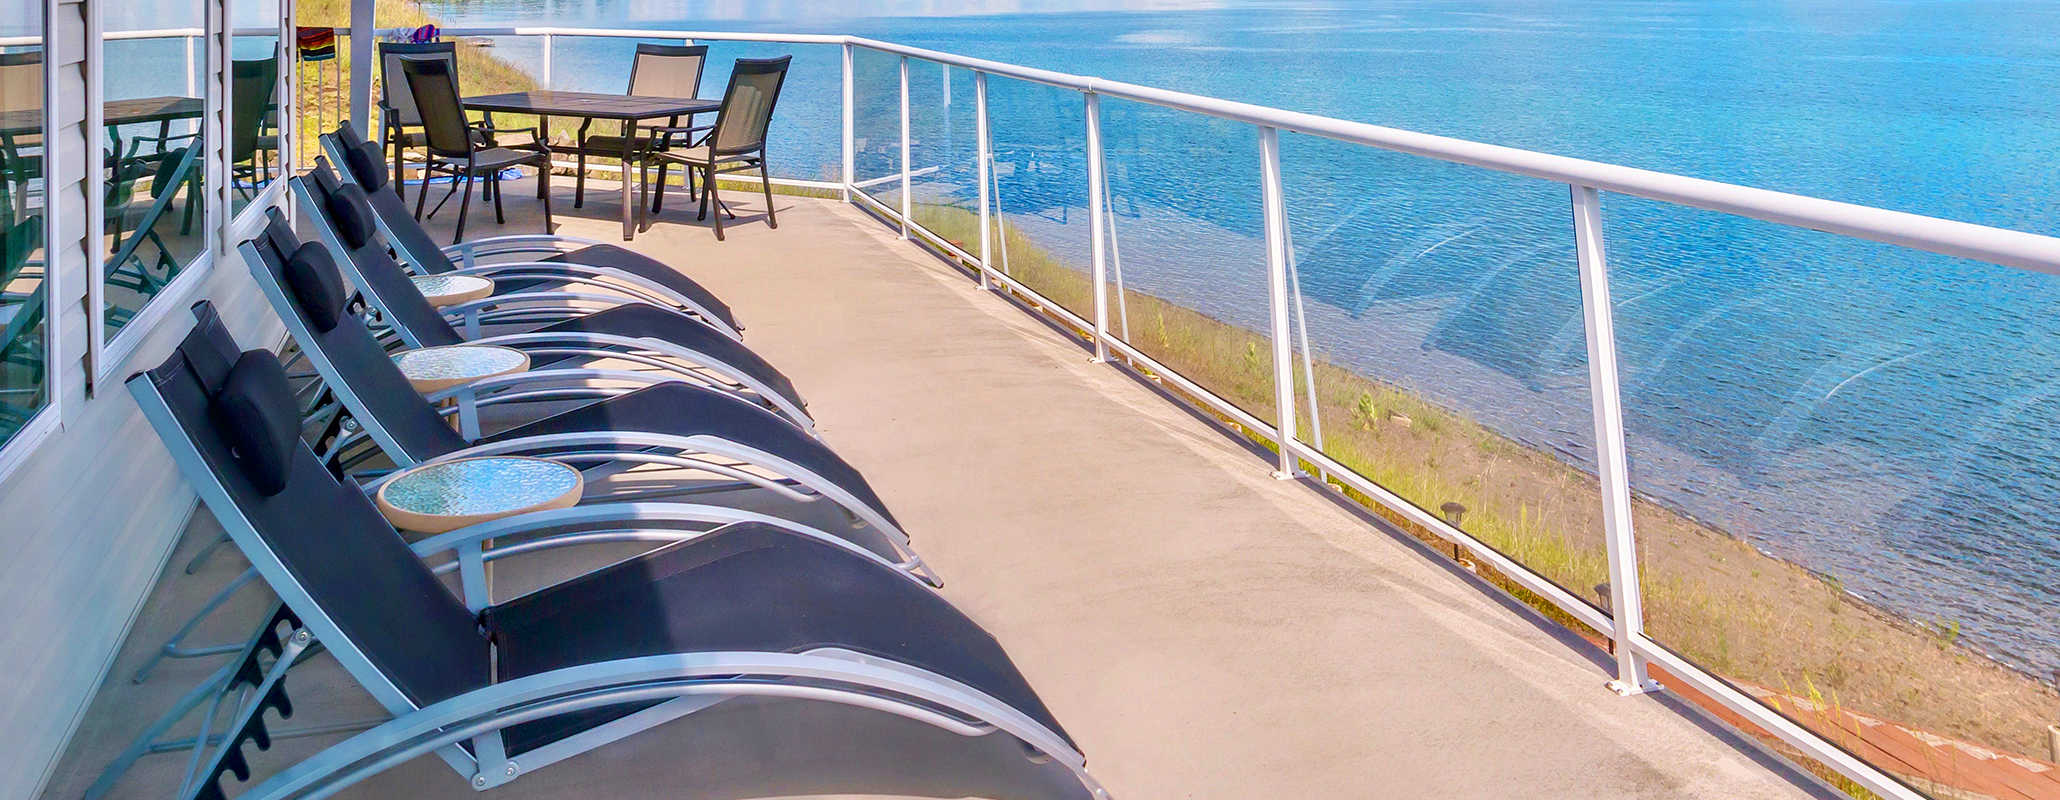 Lounge chairs, side tables and an outdoor table with chairs sit on a cement porch overlooking a beach. Aldora tempered glass acts as the railing on the porch.